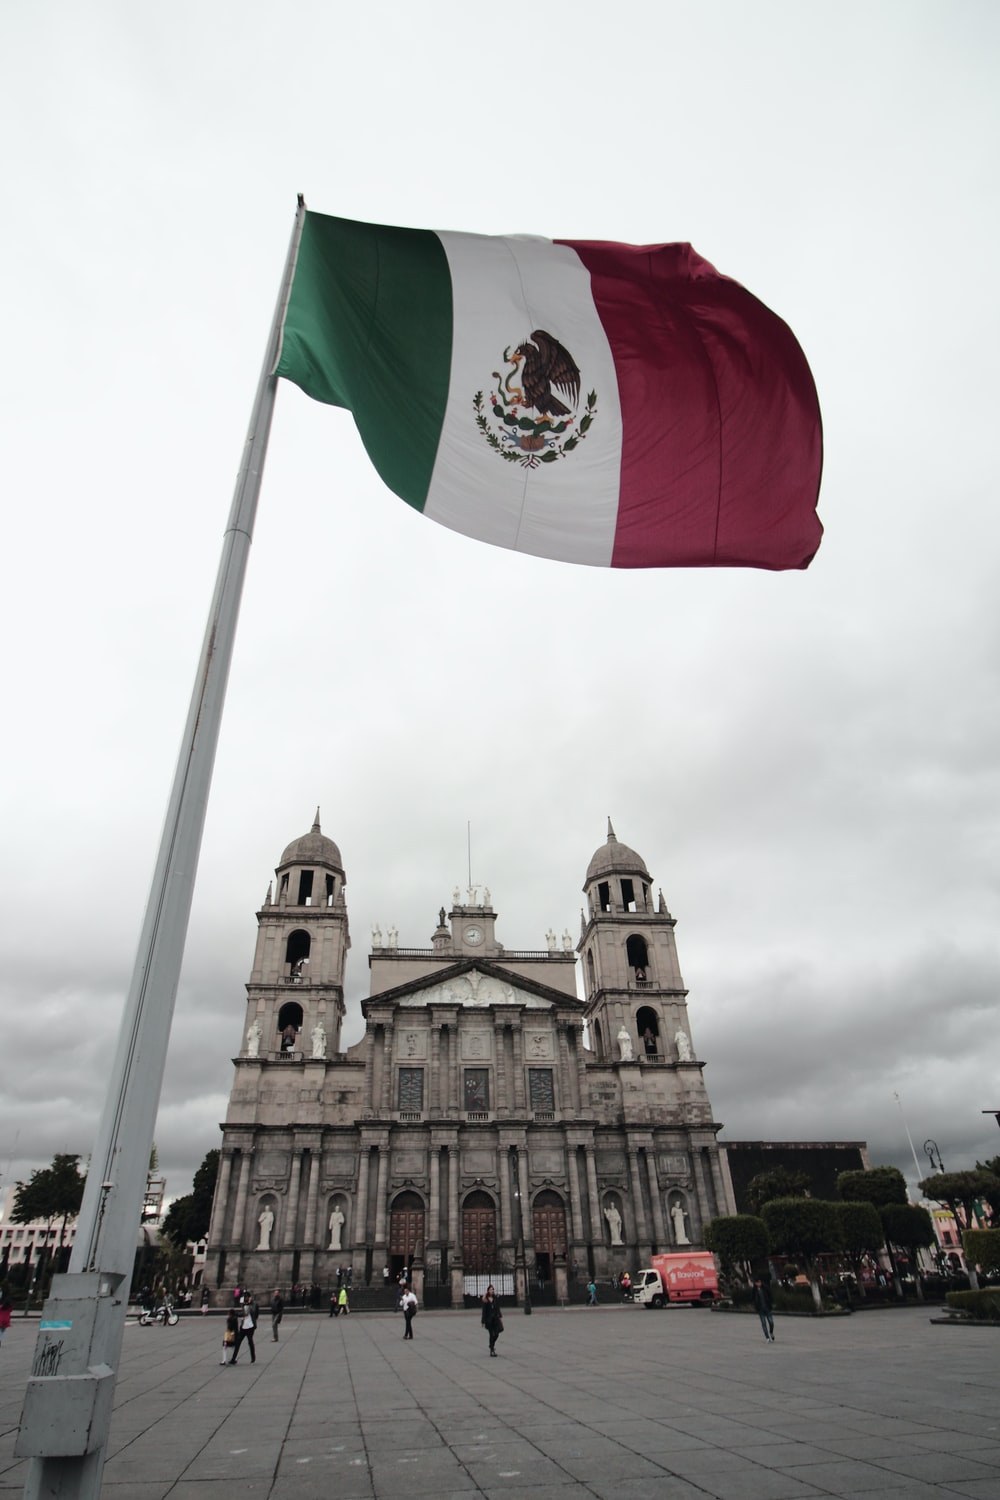 Mexico flag waving near brown concrete building at daytime